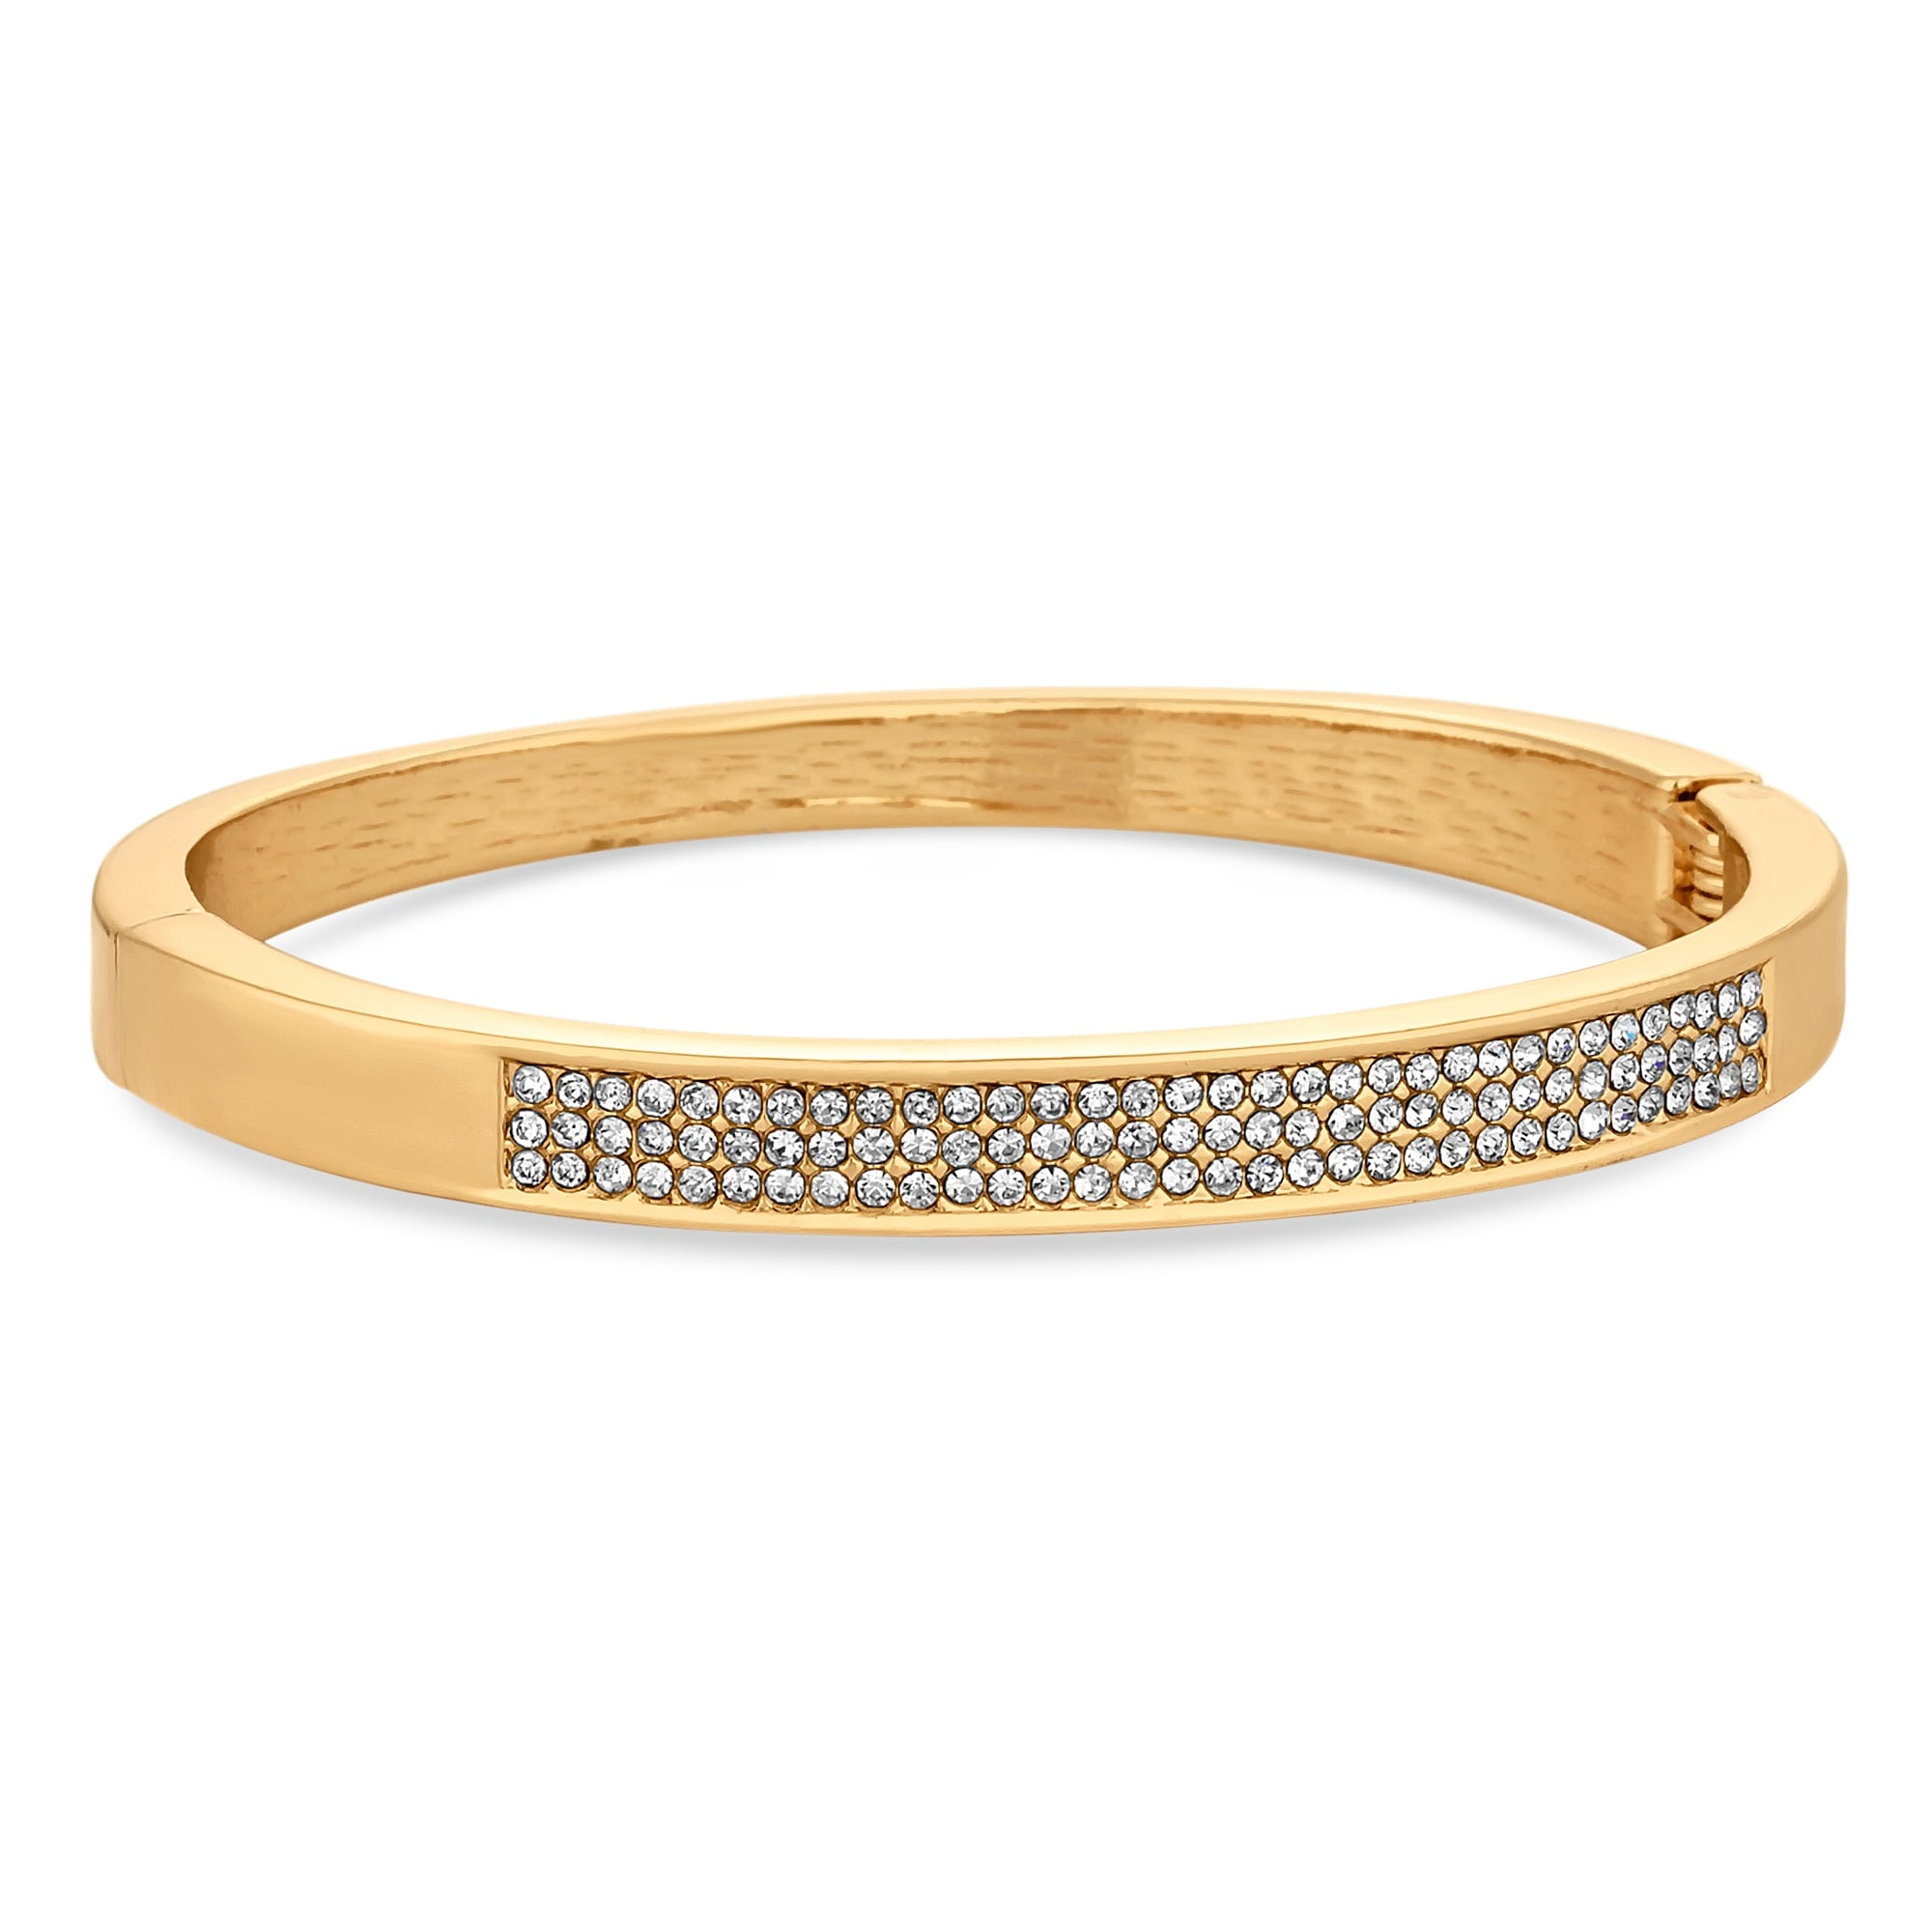 bangle in bracelet jewelry michael silver heritage metallic lyst kors gallery pave normal astor product bangles pav